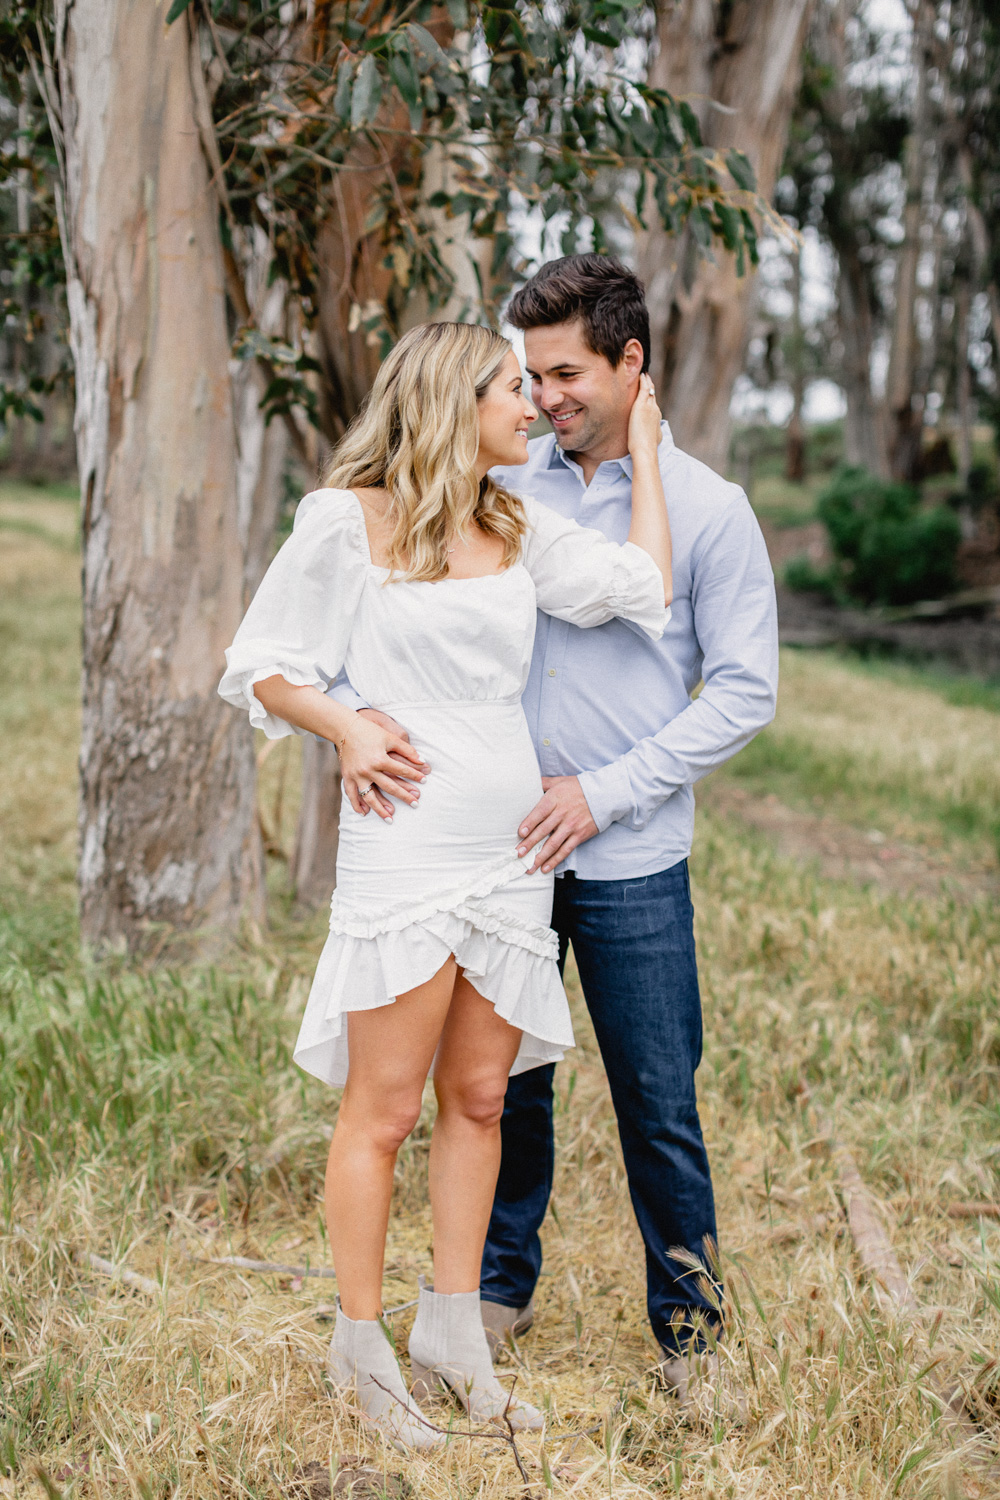 Ashley-Rae-Studio-San-Luis-Obispo-Engagement-Session-Santa-Barbara-Wedding-Photographer-107.jpg